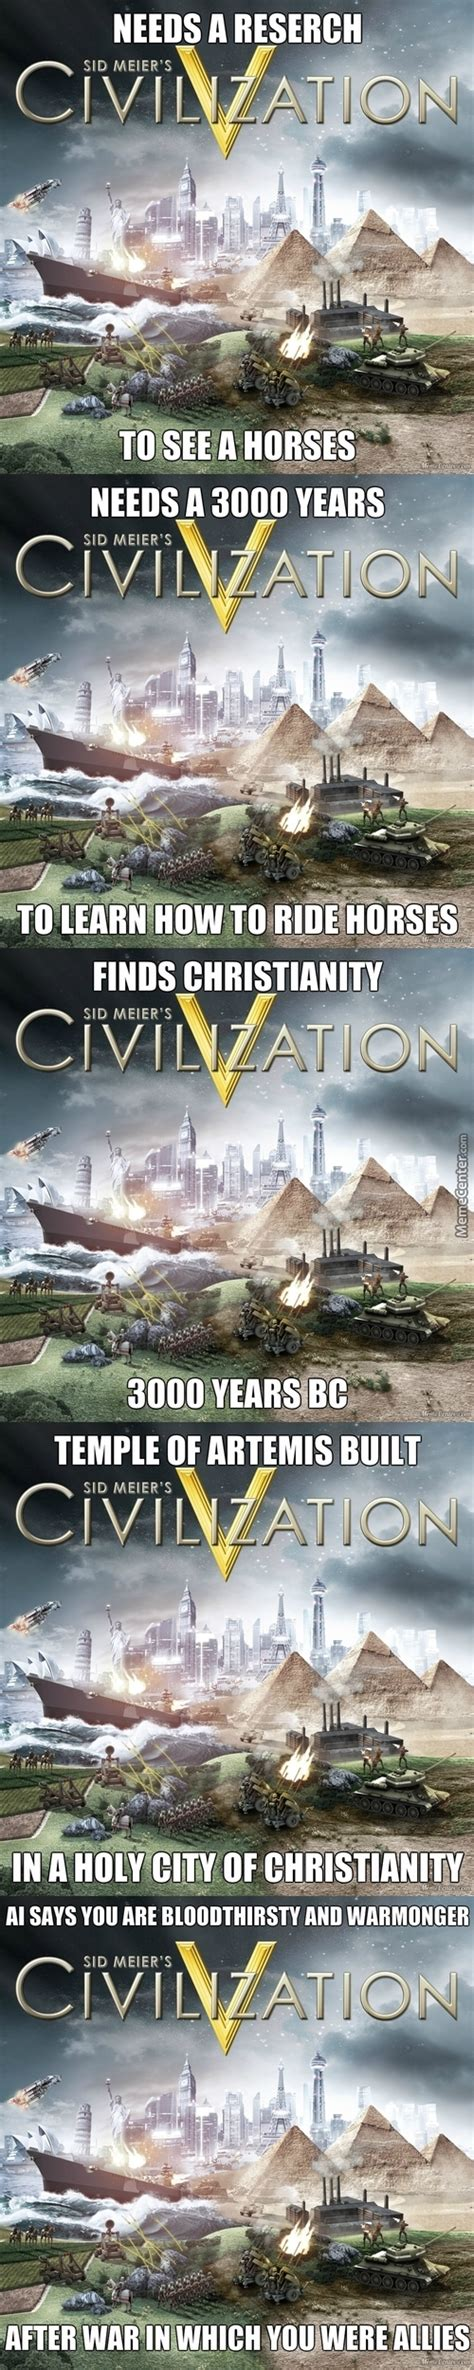 Civilization 5 Memes - civilization 5 memes best collection of funny civilization 5 pictures